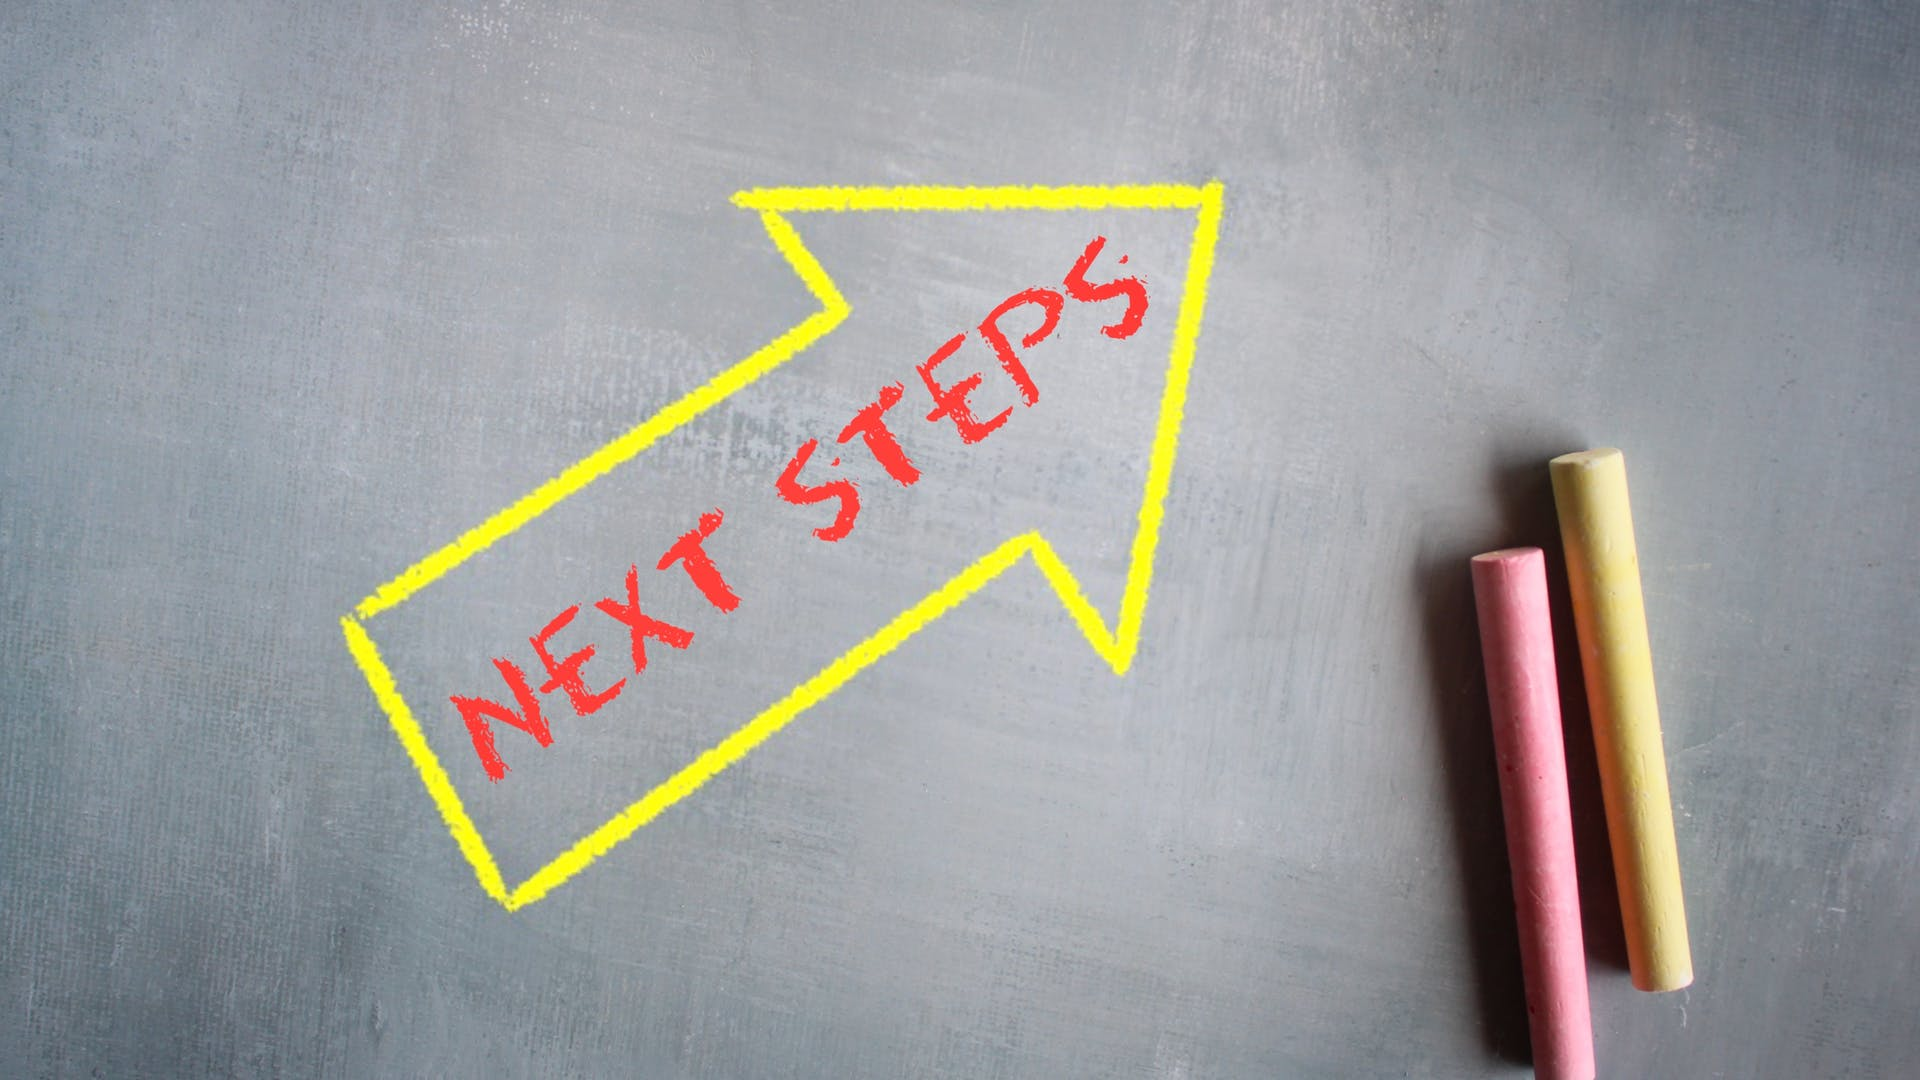 Next steps arrow sign and chalk board